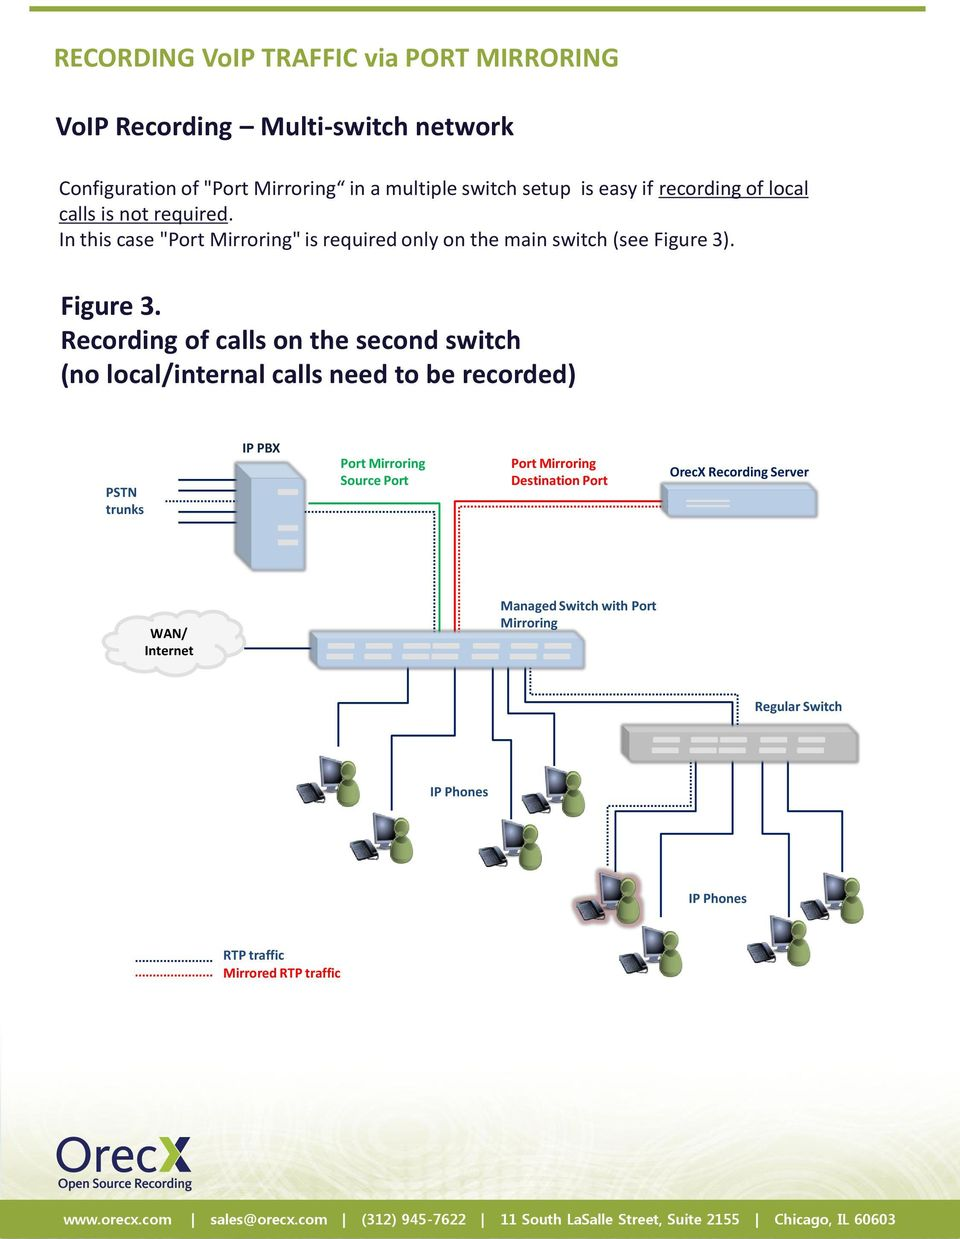 "In this case """" is required only on the main switch (see Figure 3)"